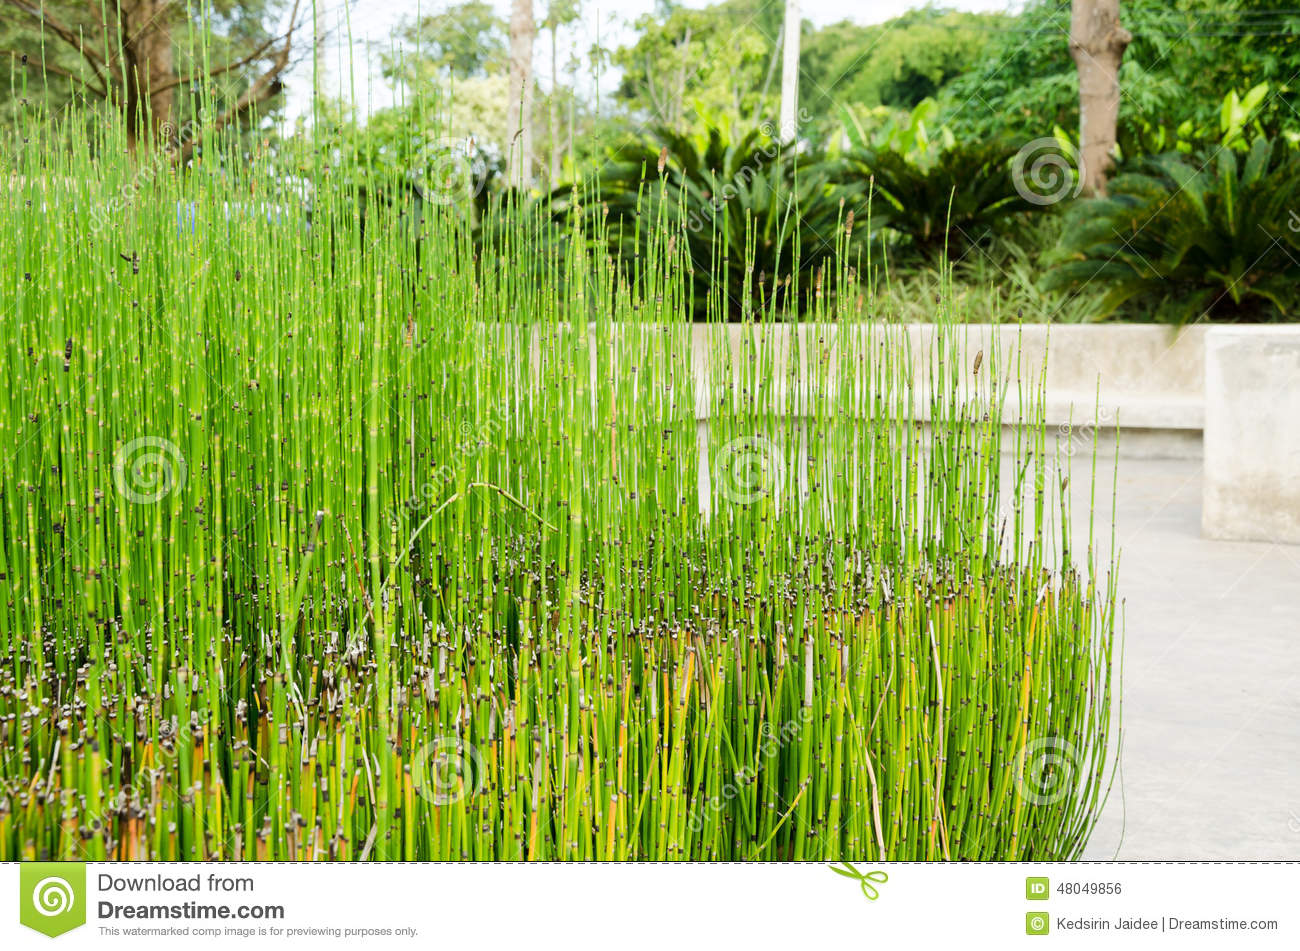 Plante ornementale dans le jardin ext rieur photo stock for Plante exterieur jardin